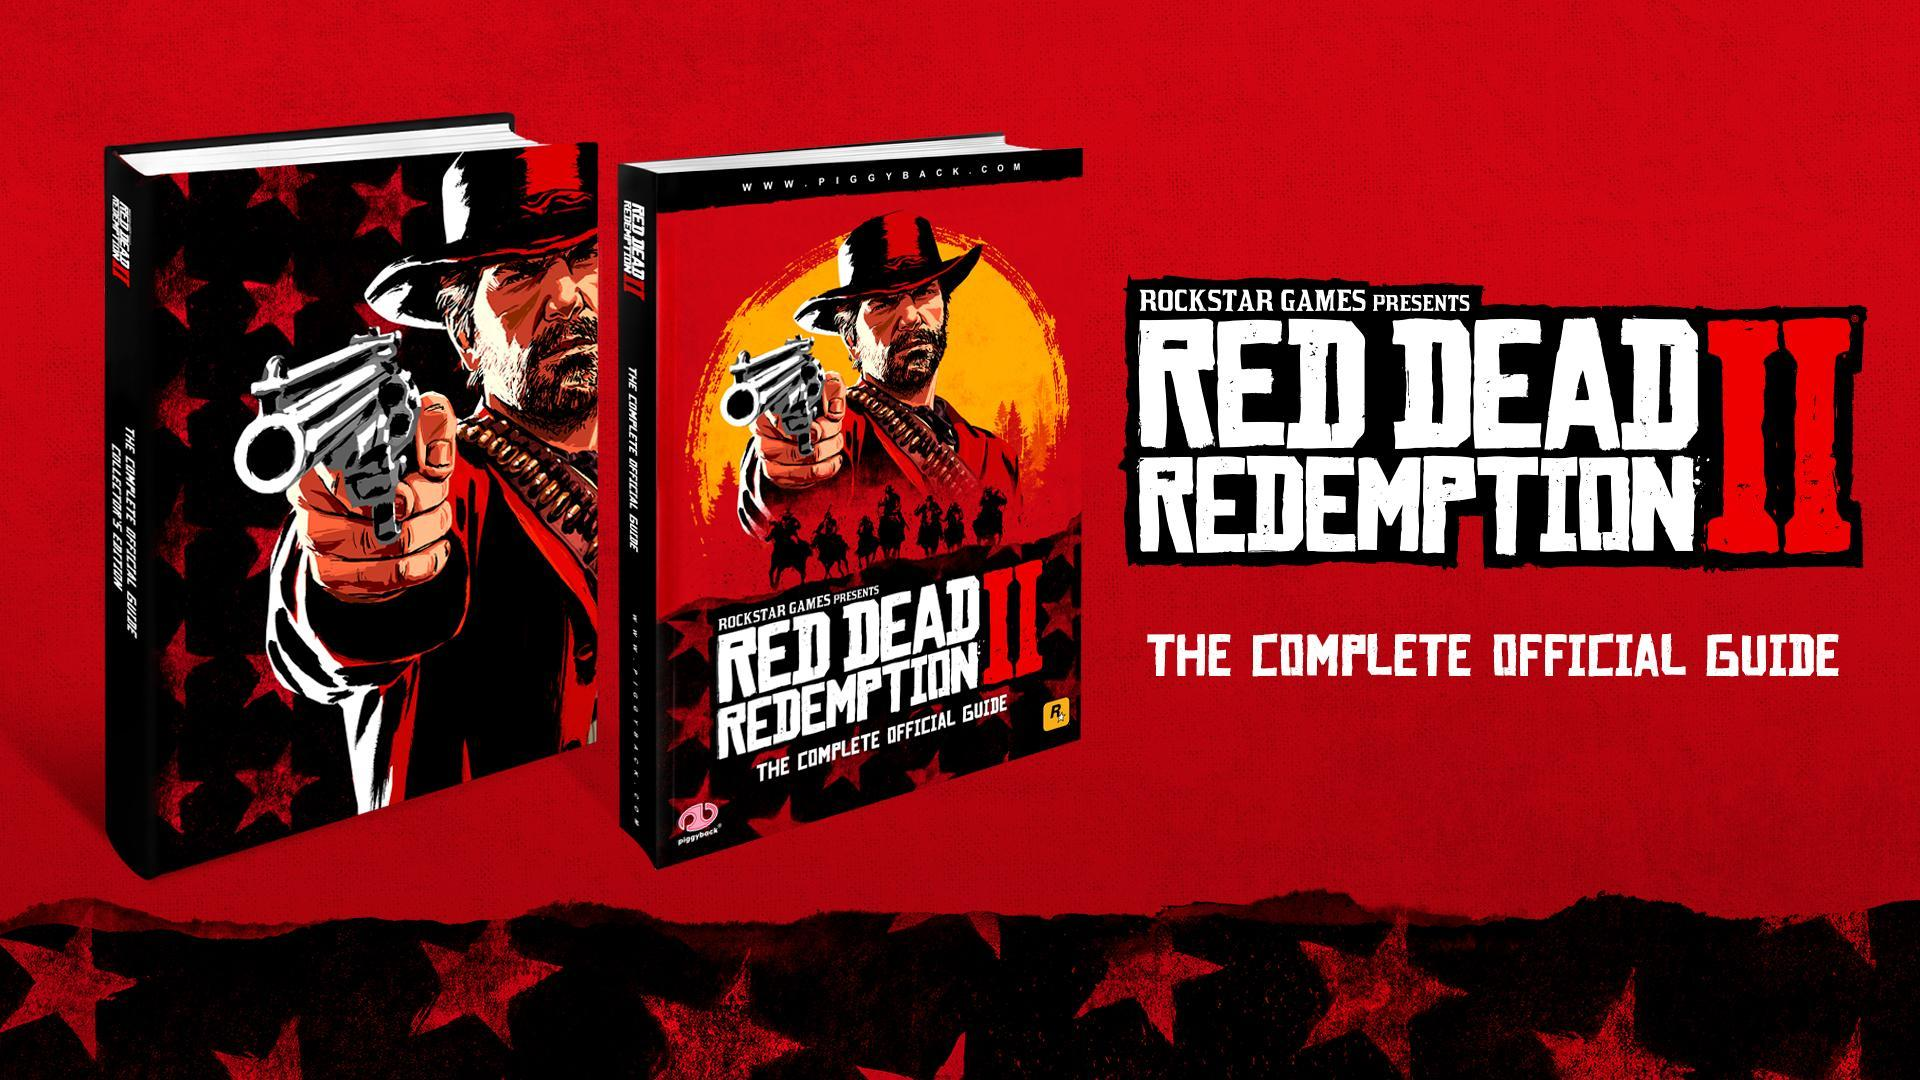 Red Dead Redemption 2: Official Complete Guide pre-order